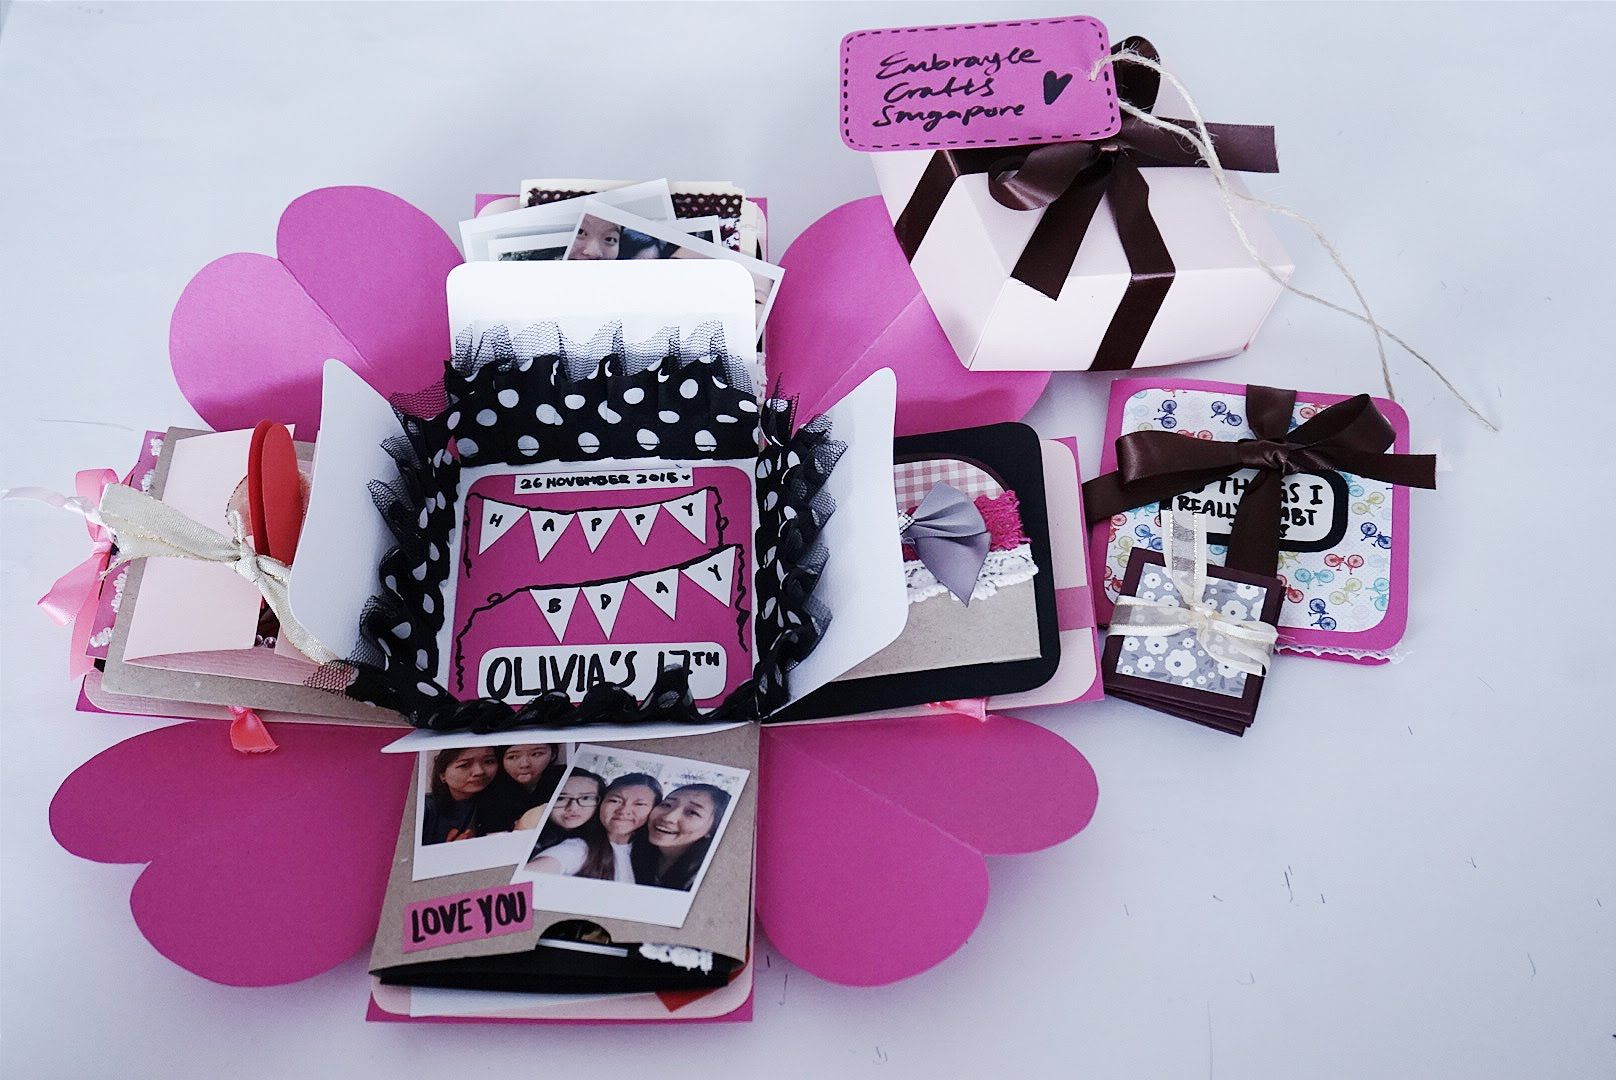 How to make scrapbook youtube - Exploding Boxcard Tutorial Heart Base Layering Making Youtube